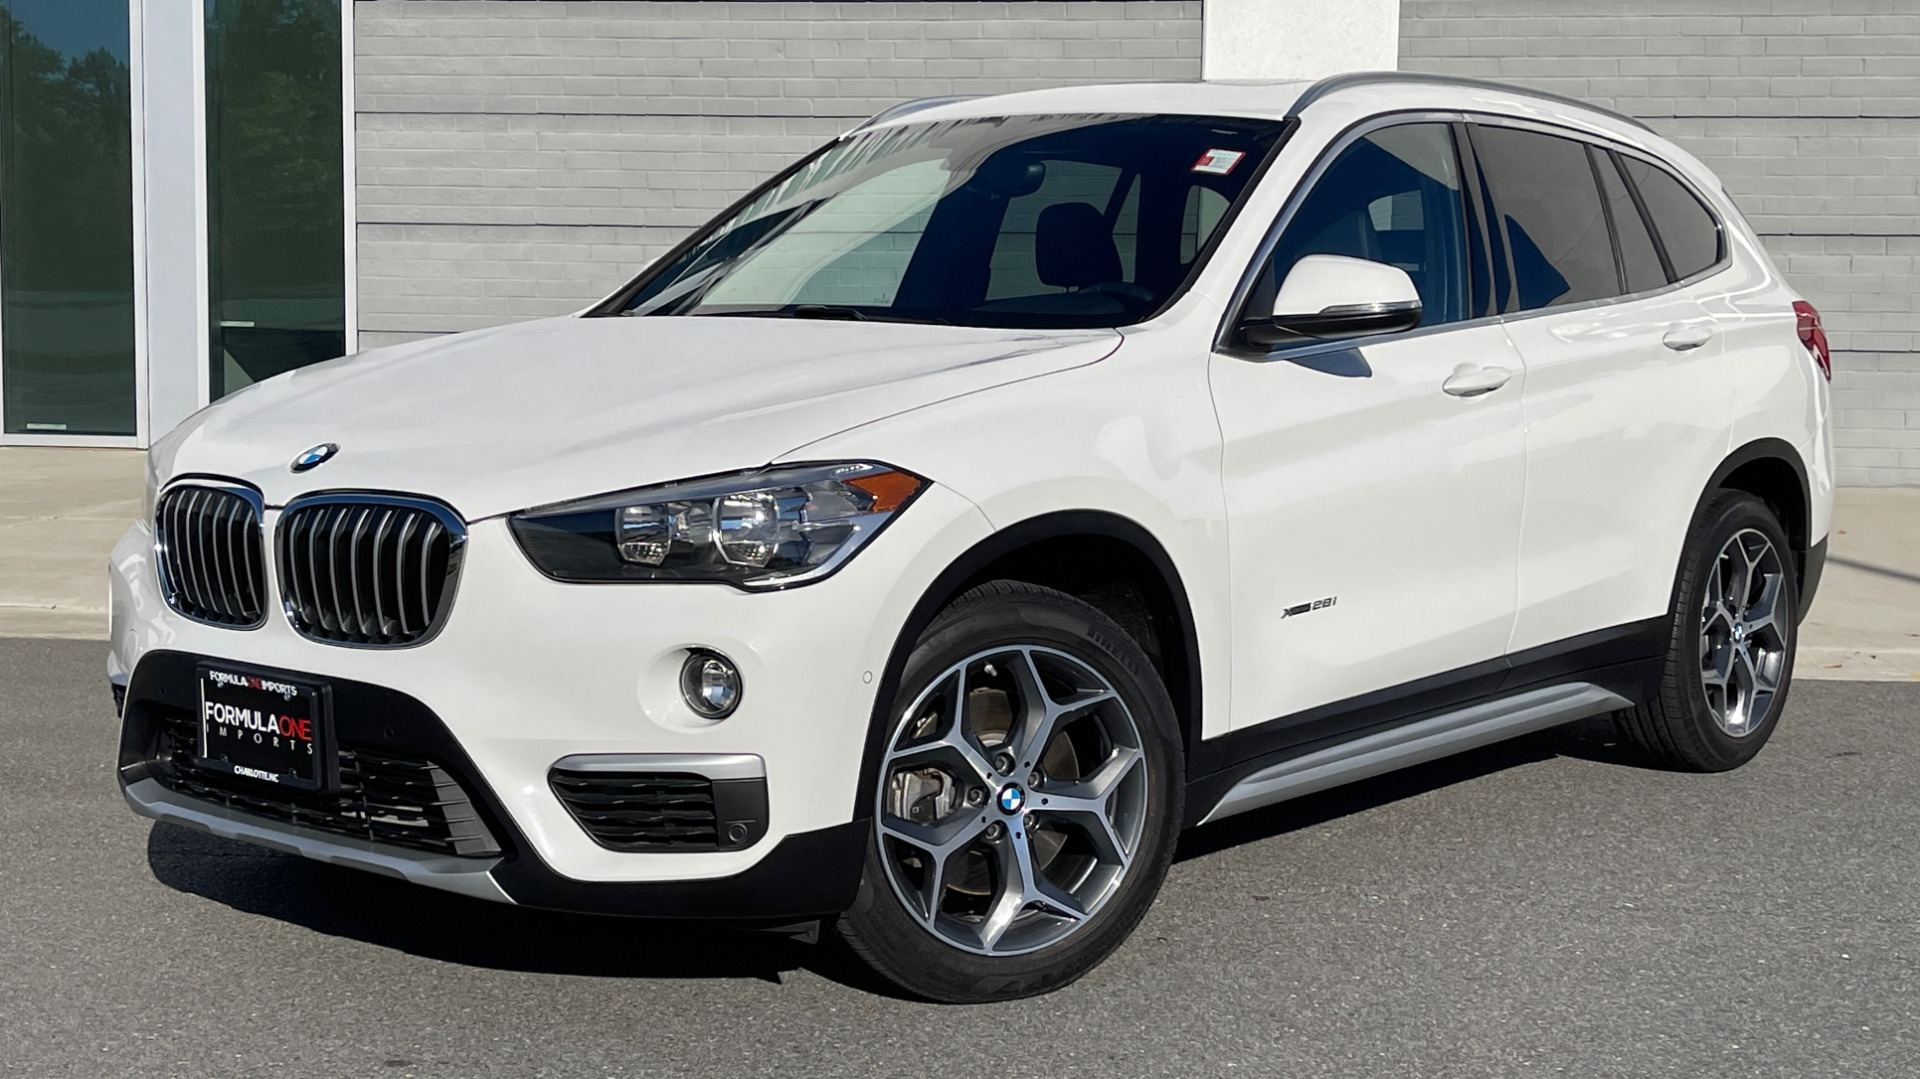 Used 2018 BMW X1 XDRIVE28I / CONV PKG / PANO-ROOF / PARK ASST / REARVIEW for sale $31,995 at Formula Imports in Charlotte NC 28227 1